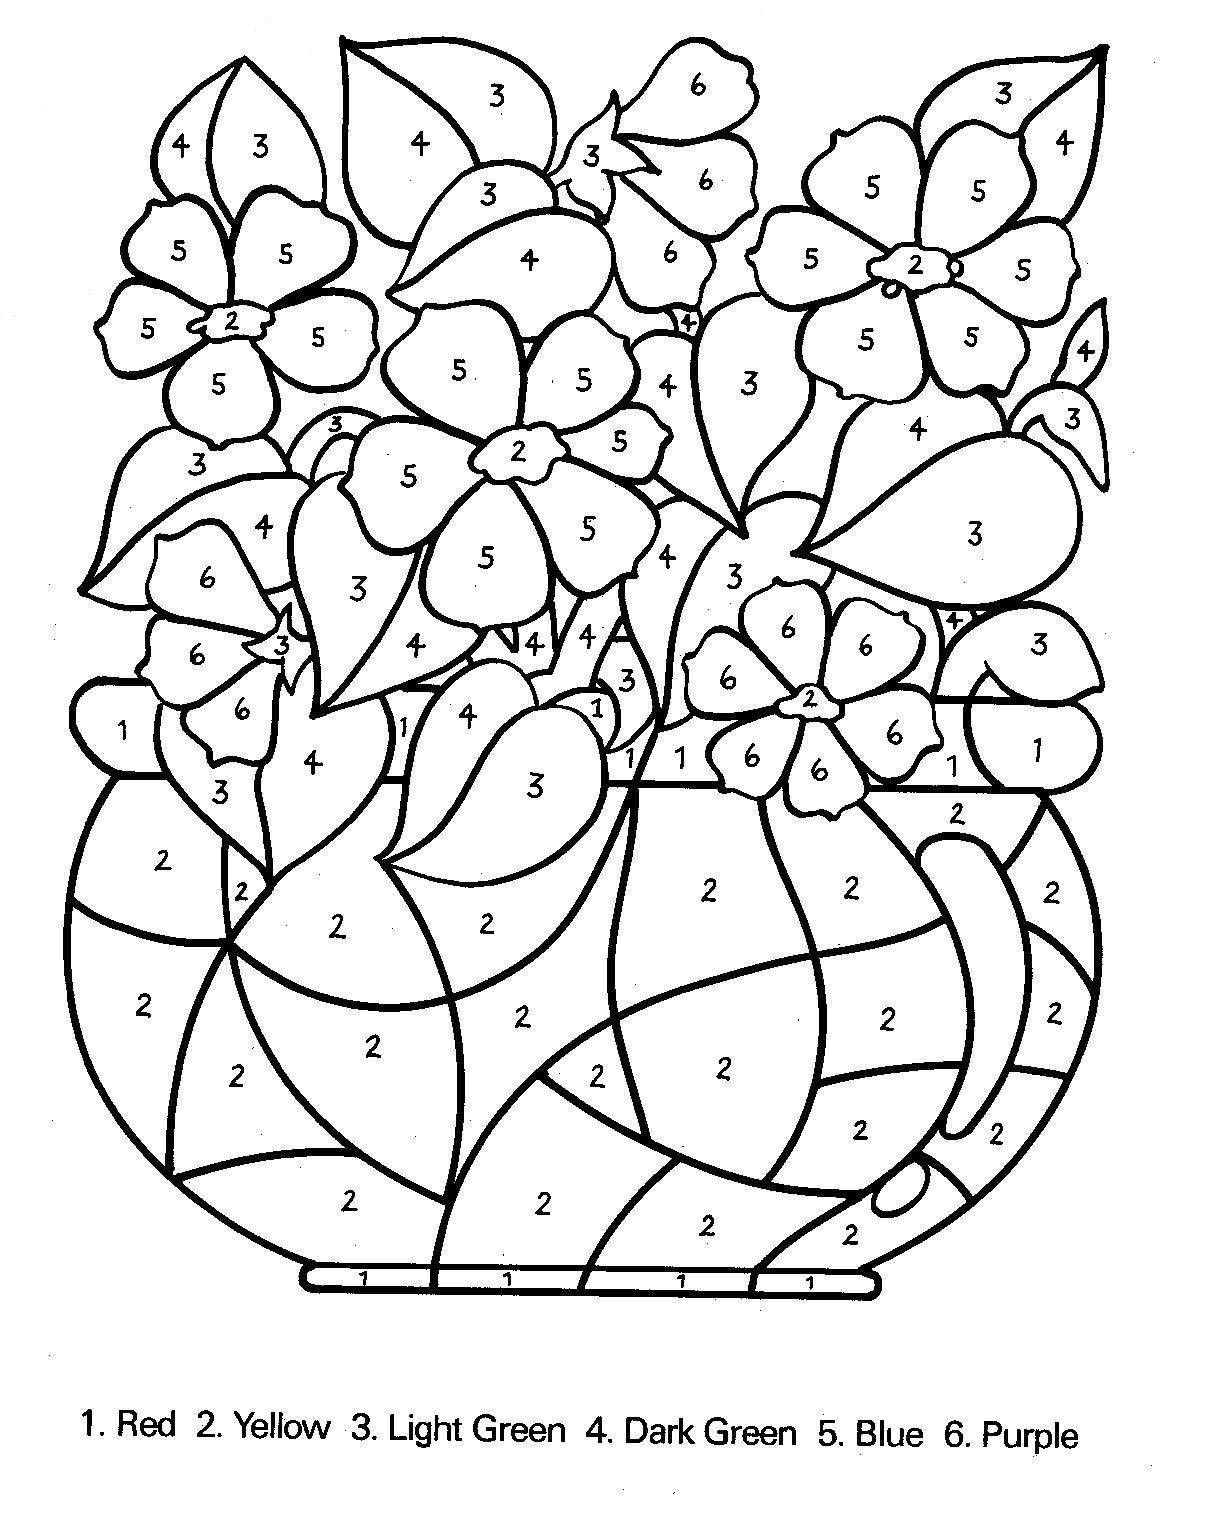 Coloring Pages For Kids Printable Numbers | Coloring Pages ...